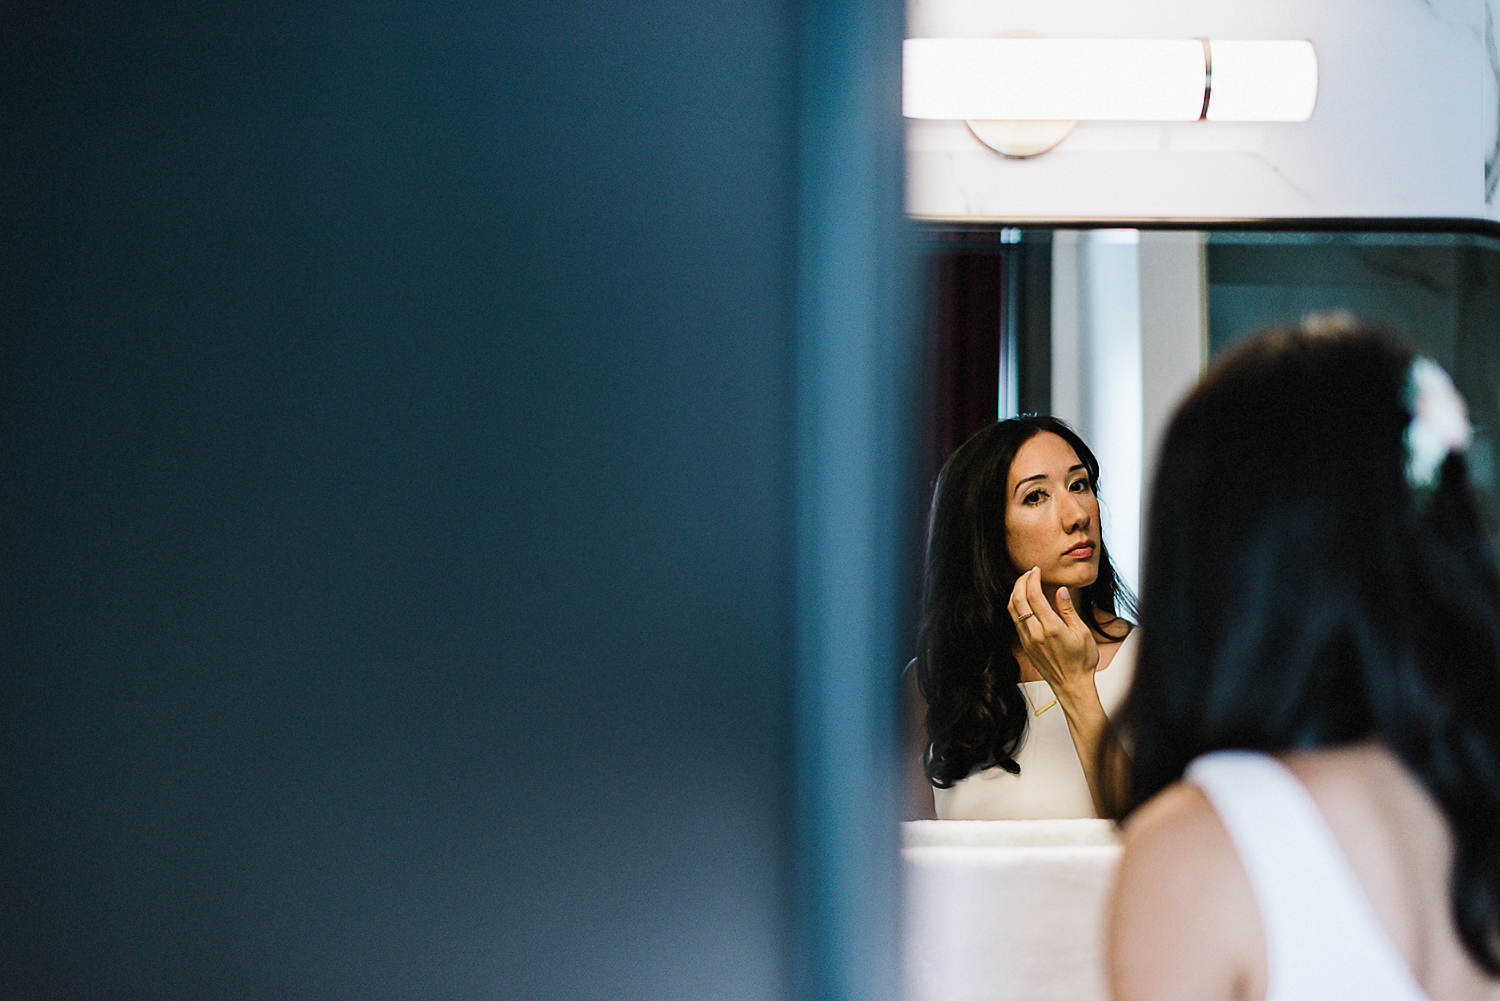 25-522-Best-Wedding-Photography-Toronto-Ontario-Canada-Photojournalistic-Genuine-Candid-Moments-Fine-Art-Vintage-Wedding-Photographers-Bride-getting-ready-mirror.jpg